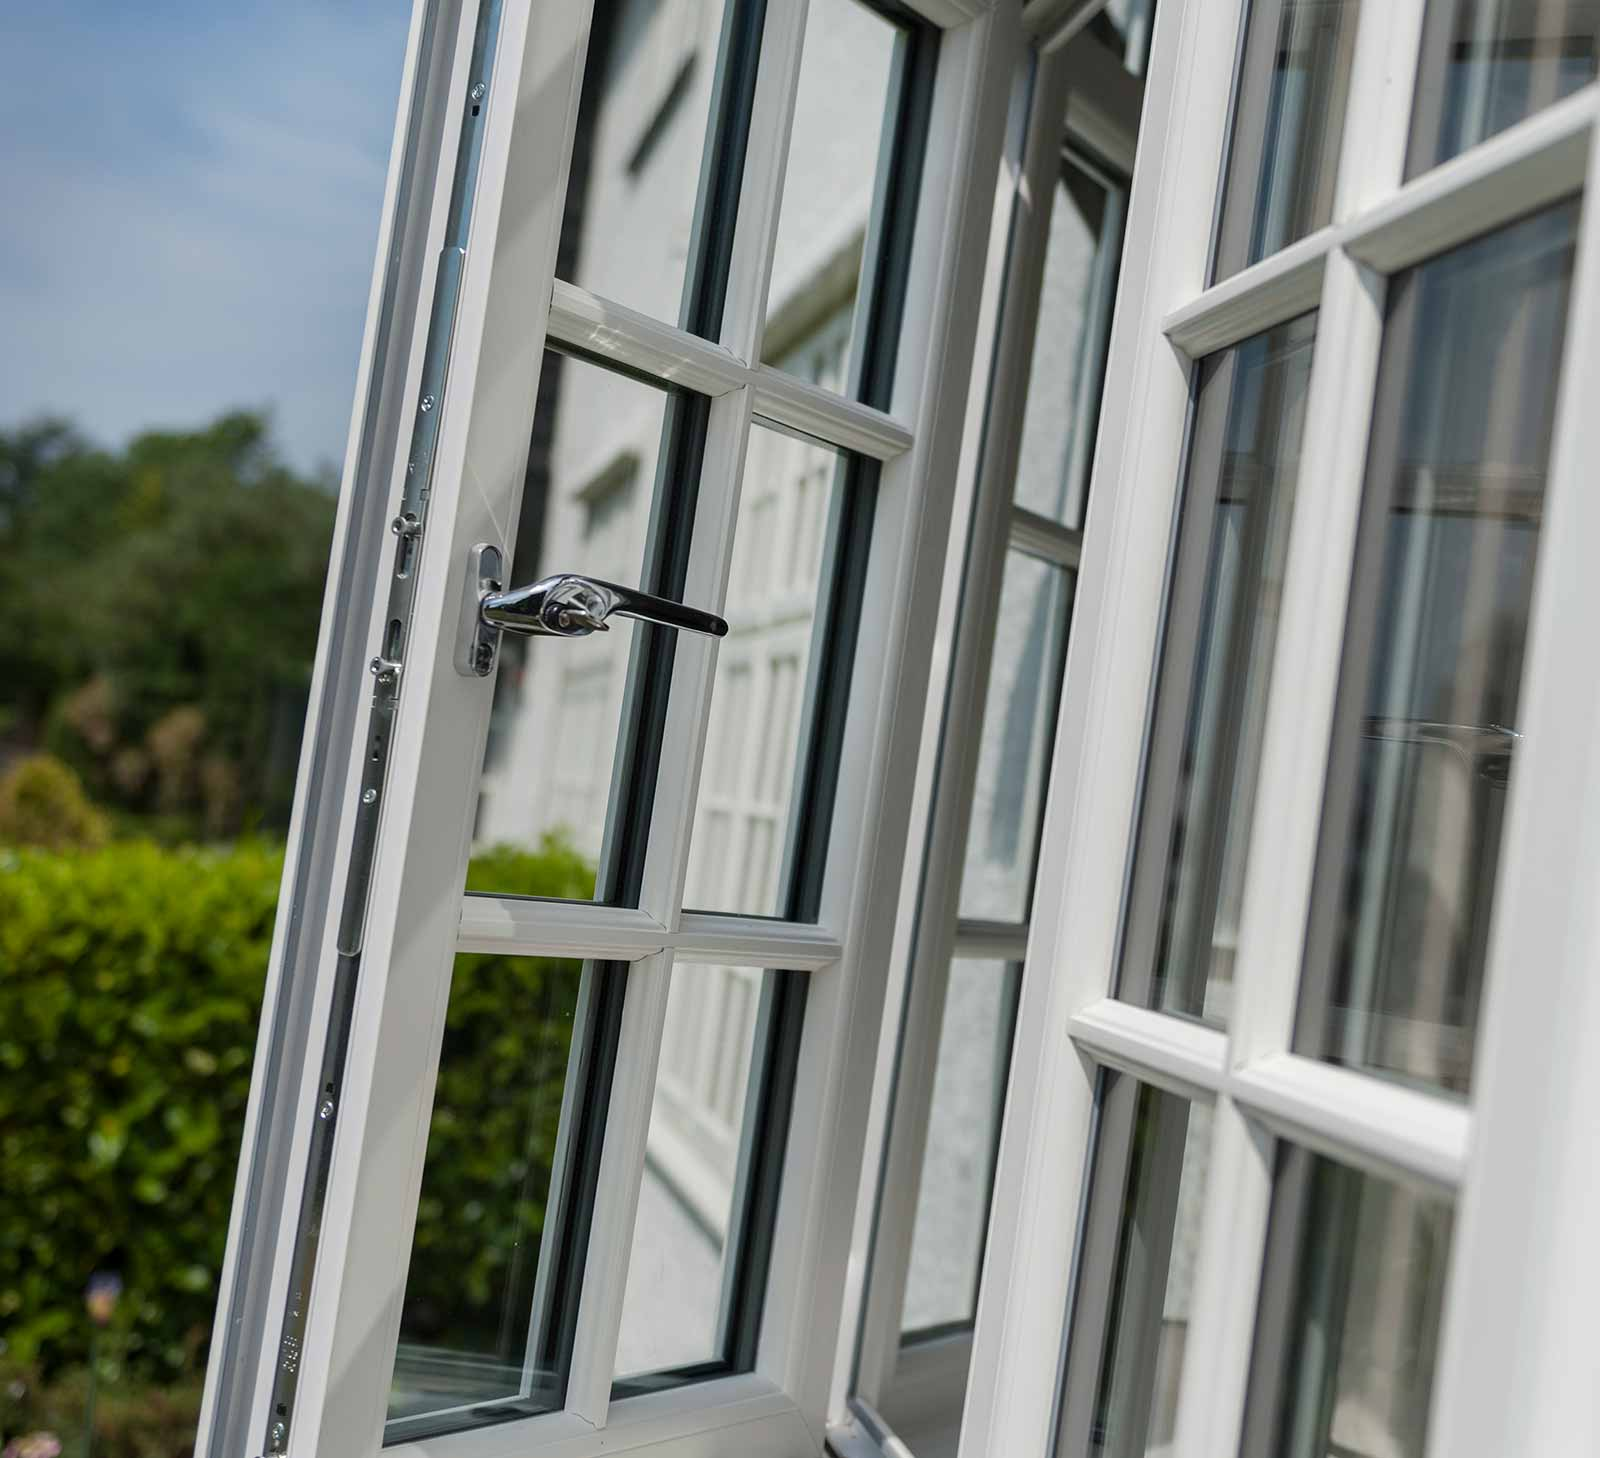 Upvc casement windows clacton on sea casement window for Upvc windows